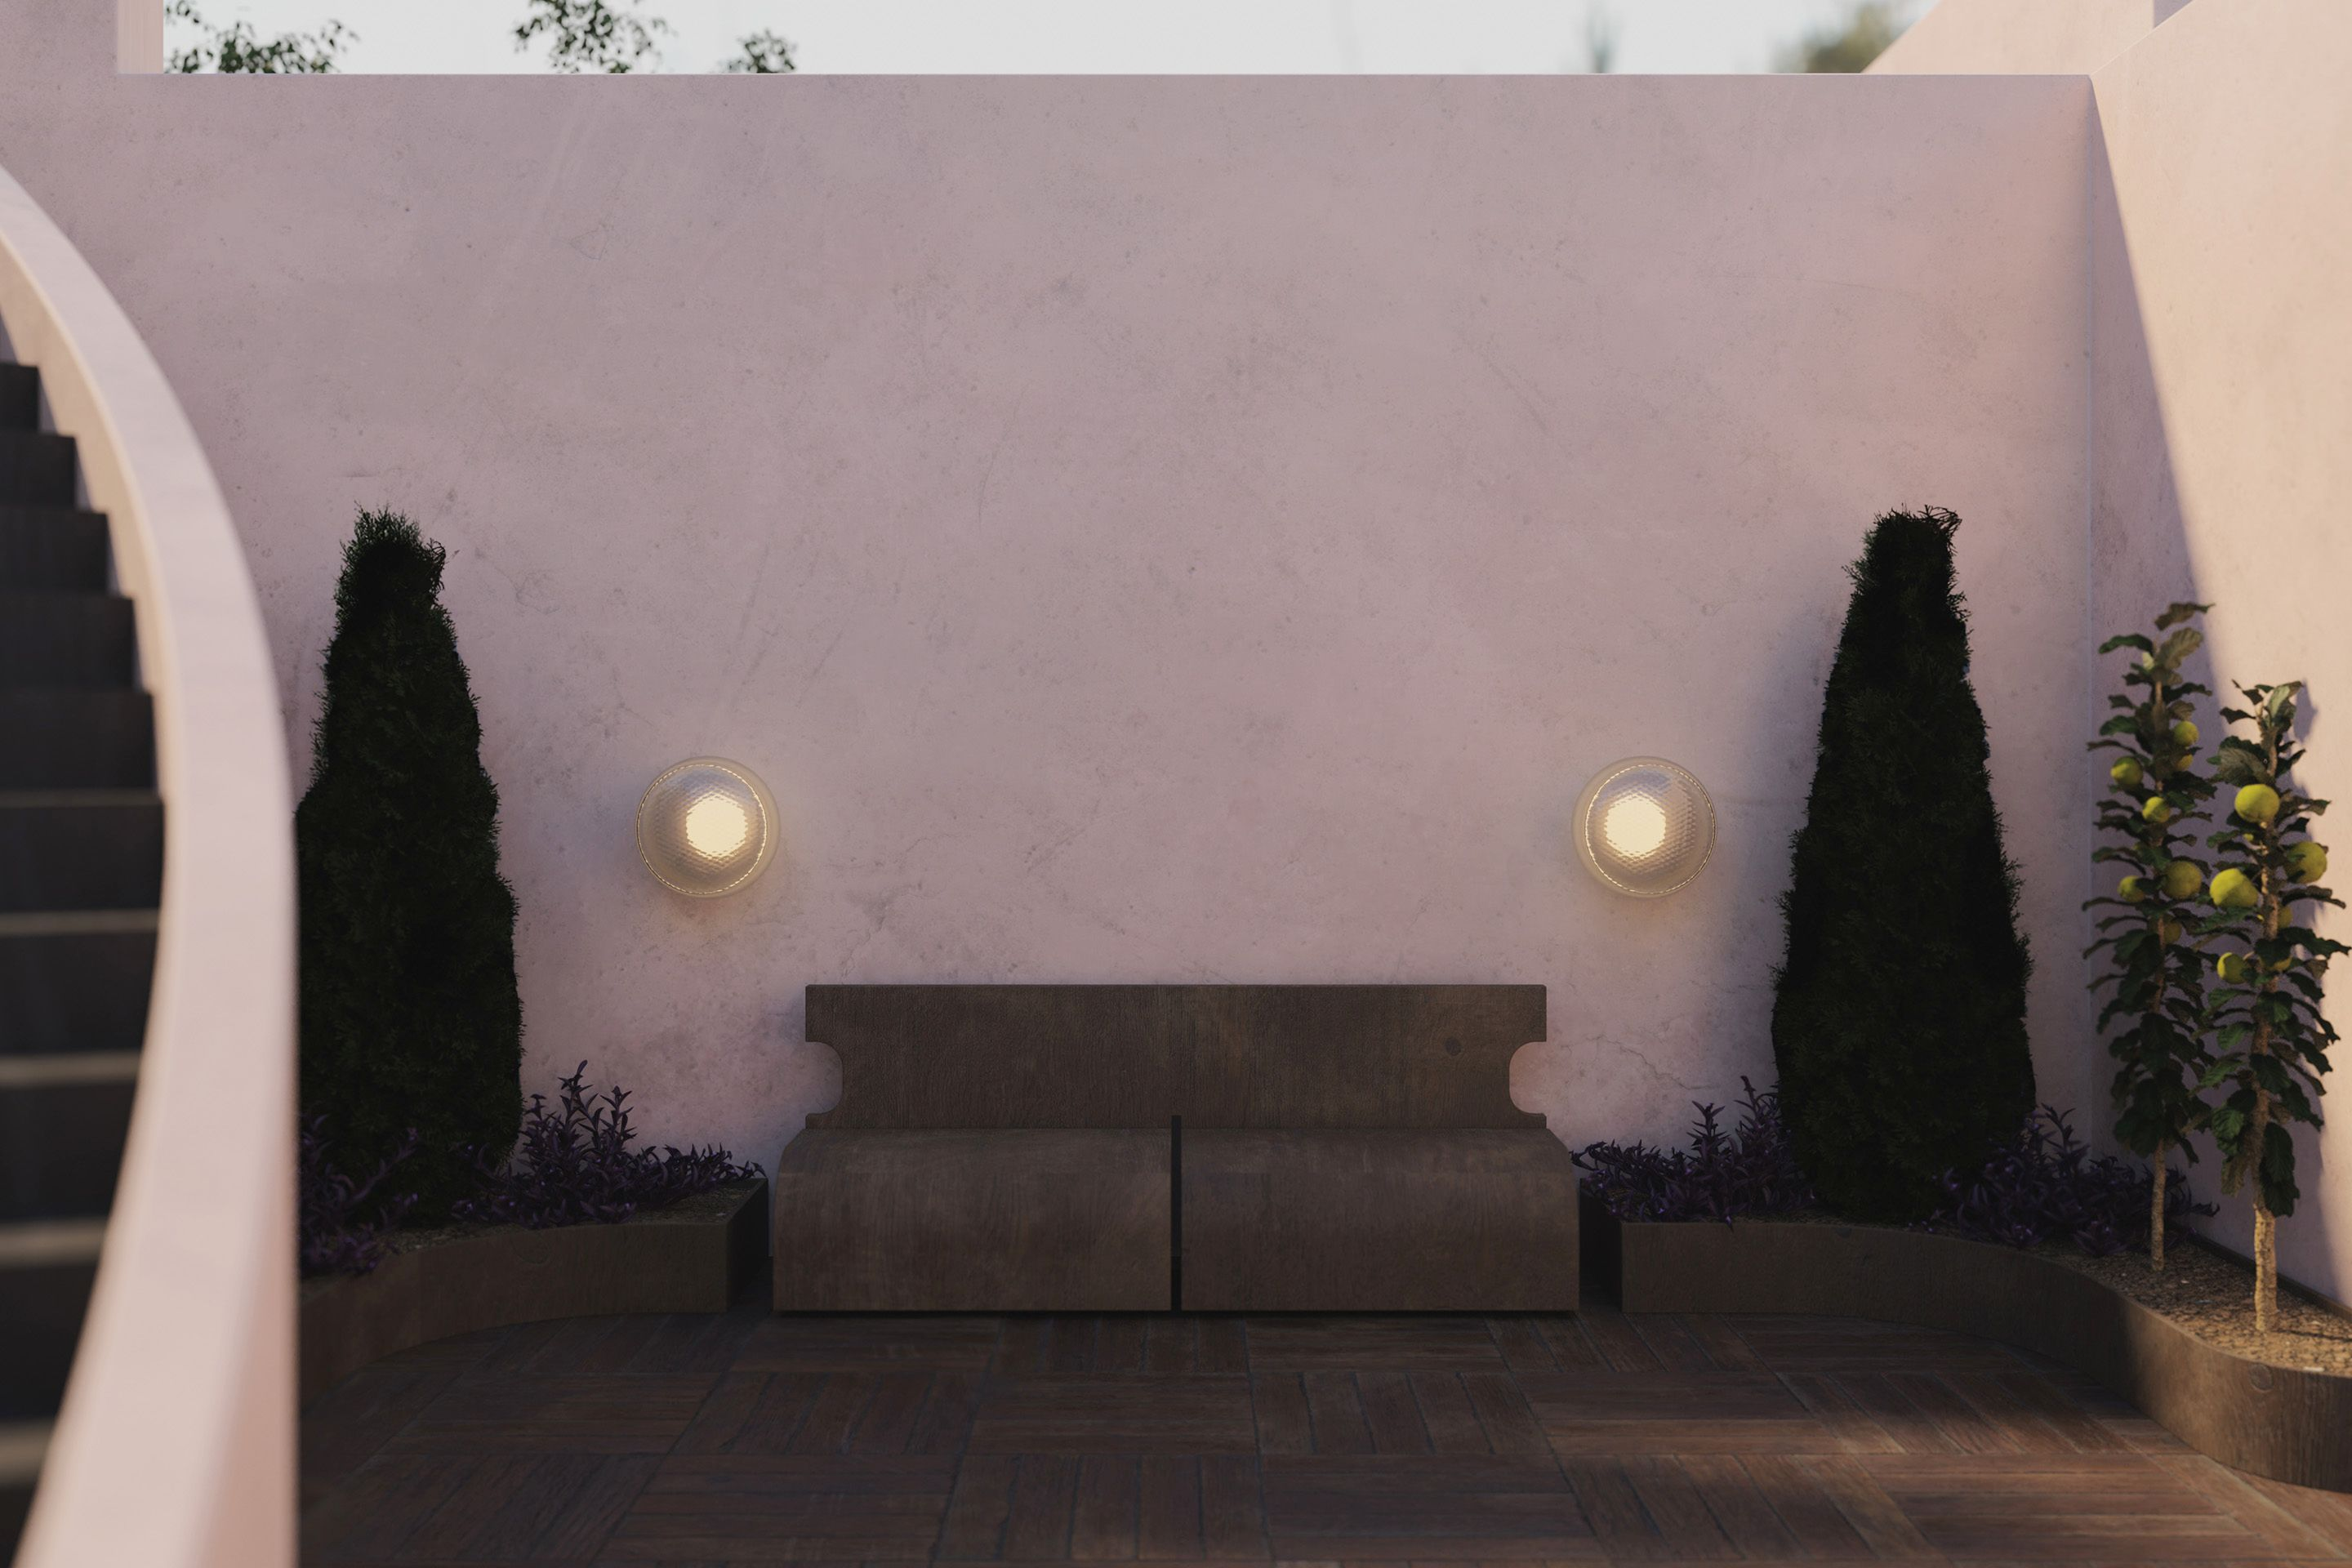 Virtual Garden — Created by Tom Hancocks. Print sconce, large globe in clear/frosted glass